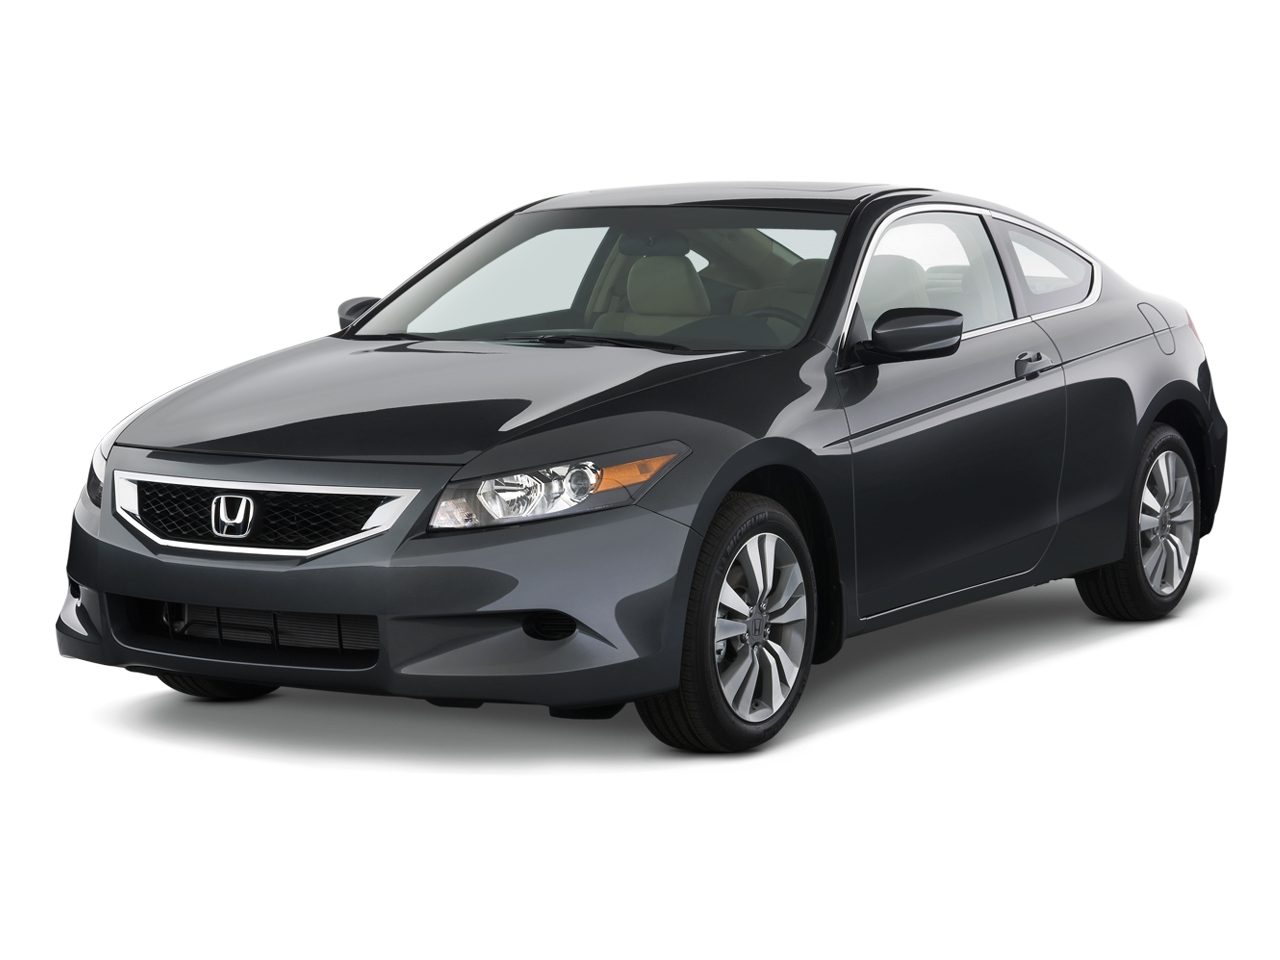 2010 Honda Accord Coupe Review Ratings Specs Prices